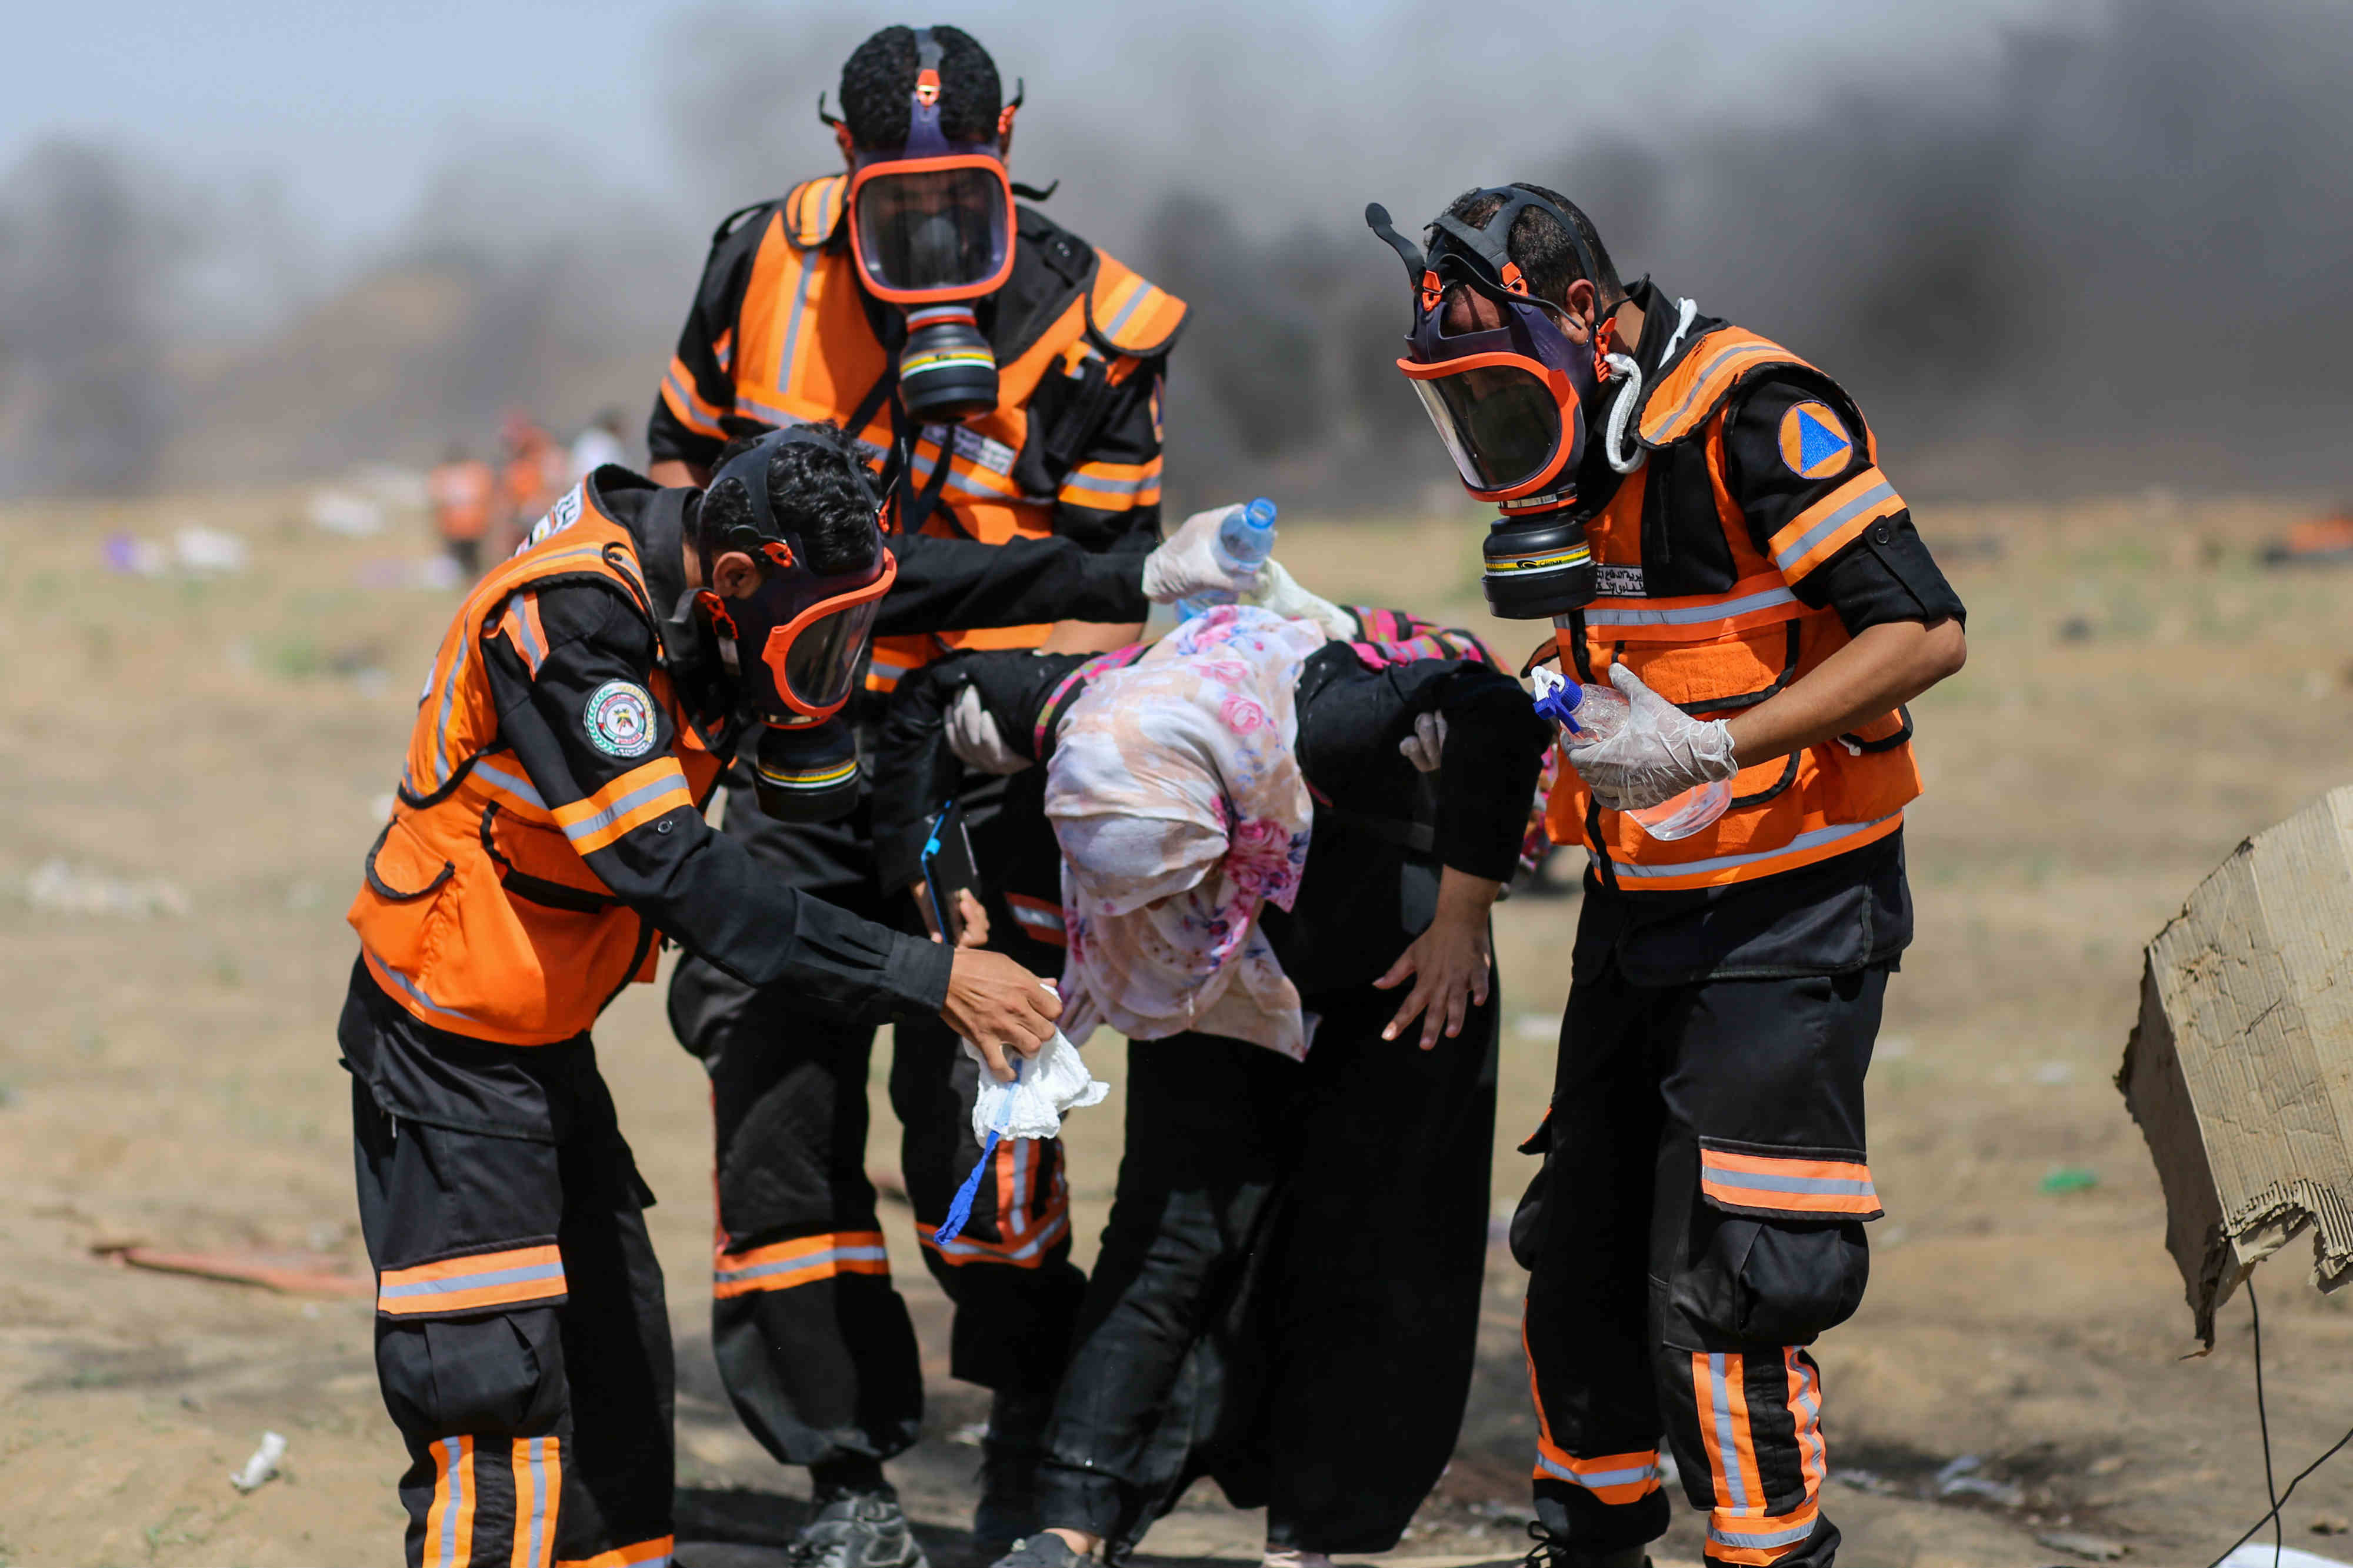 Palestinian dies after being shot in head at protest